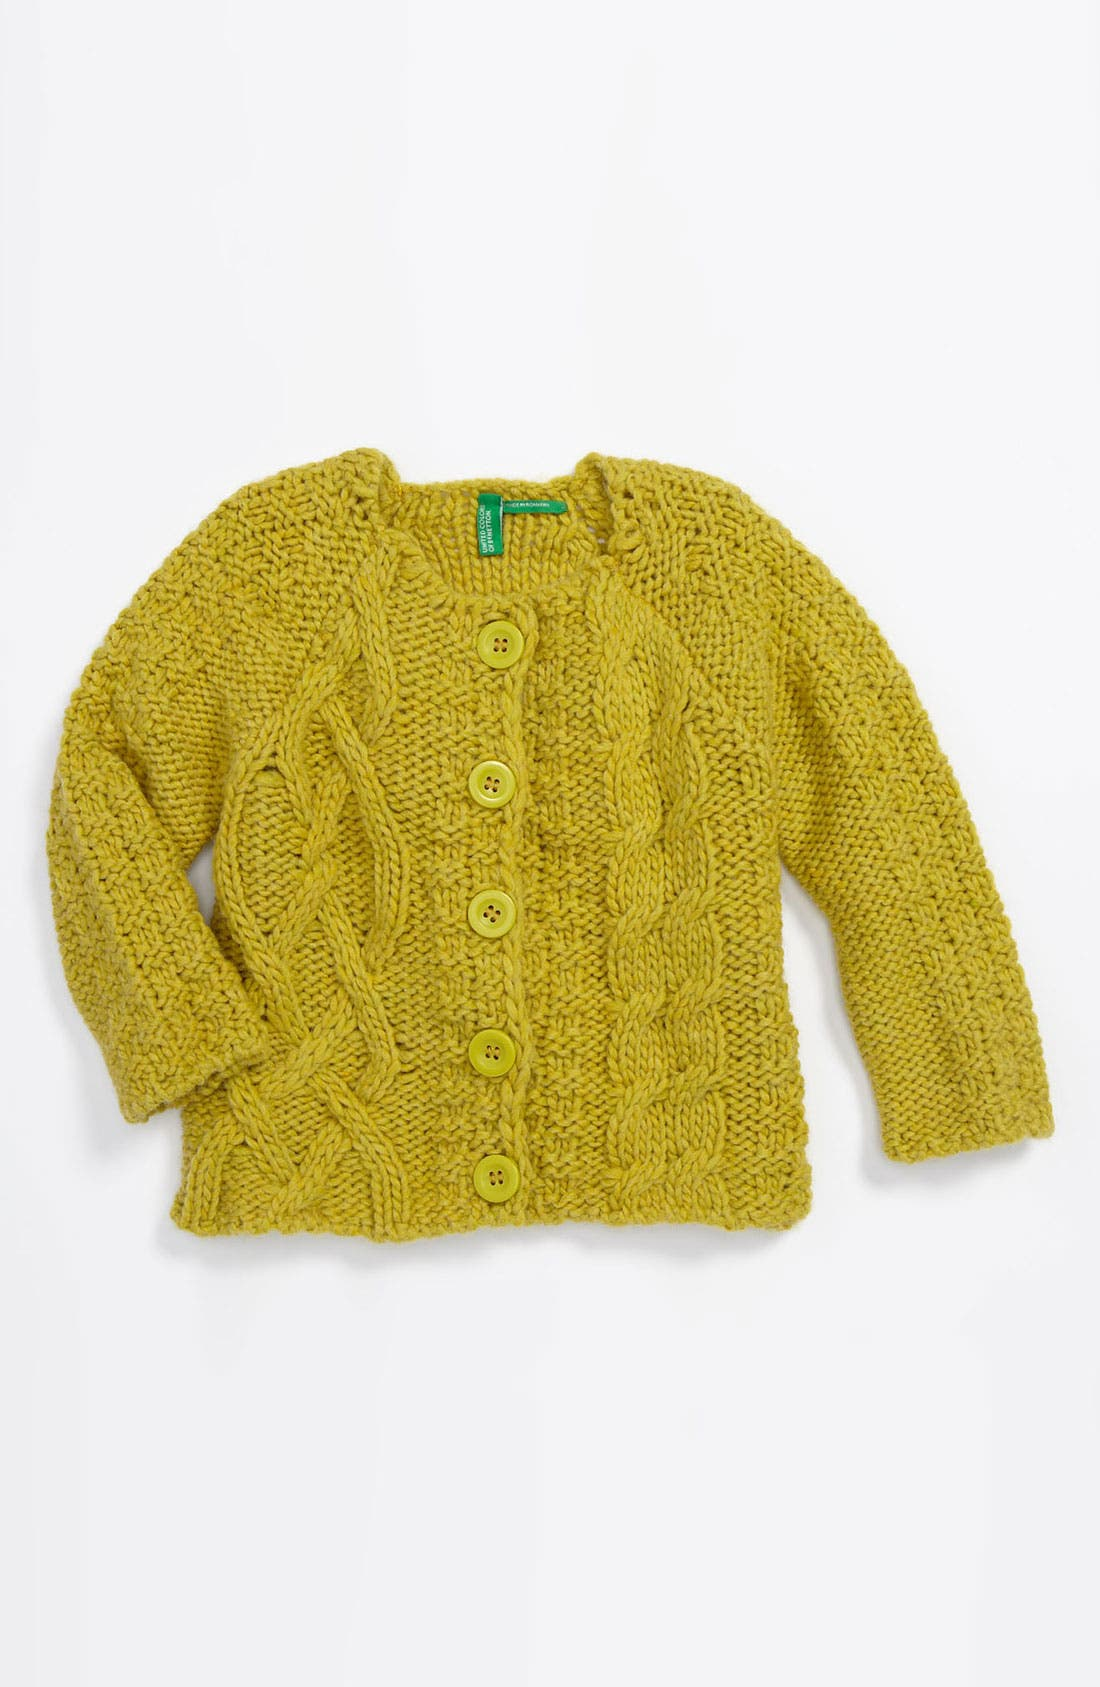 Alternate Image 1 Selected - United Colors of Benetton Cable Knit Sweater (Toddler)